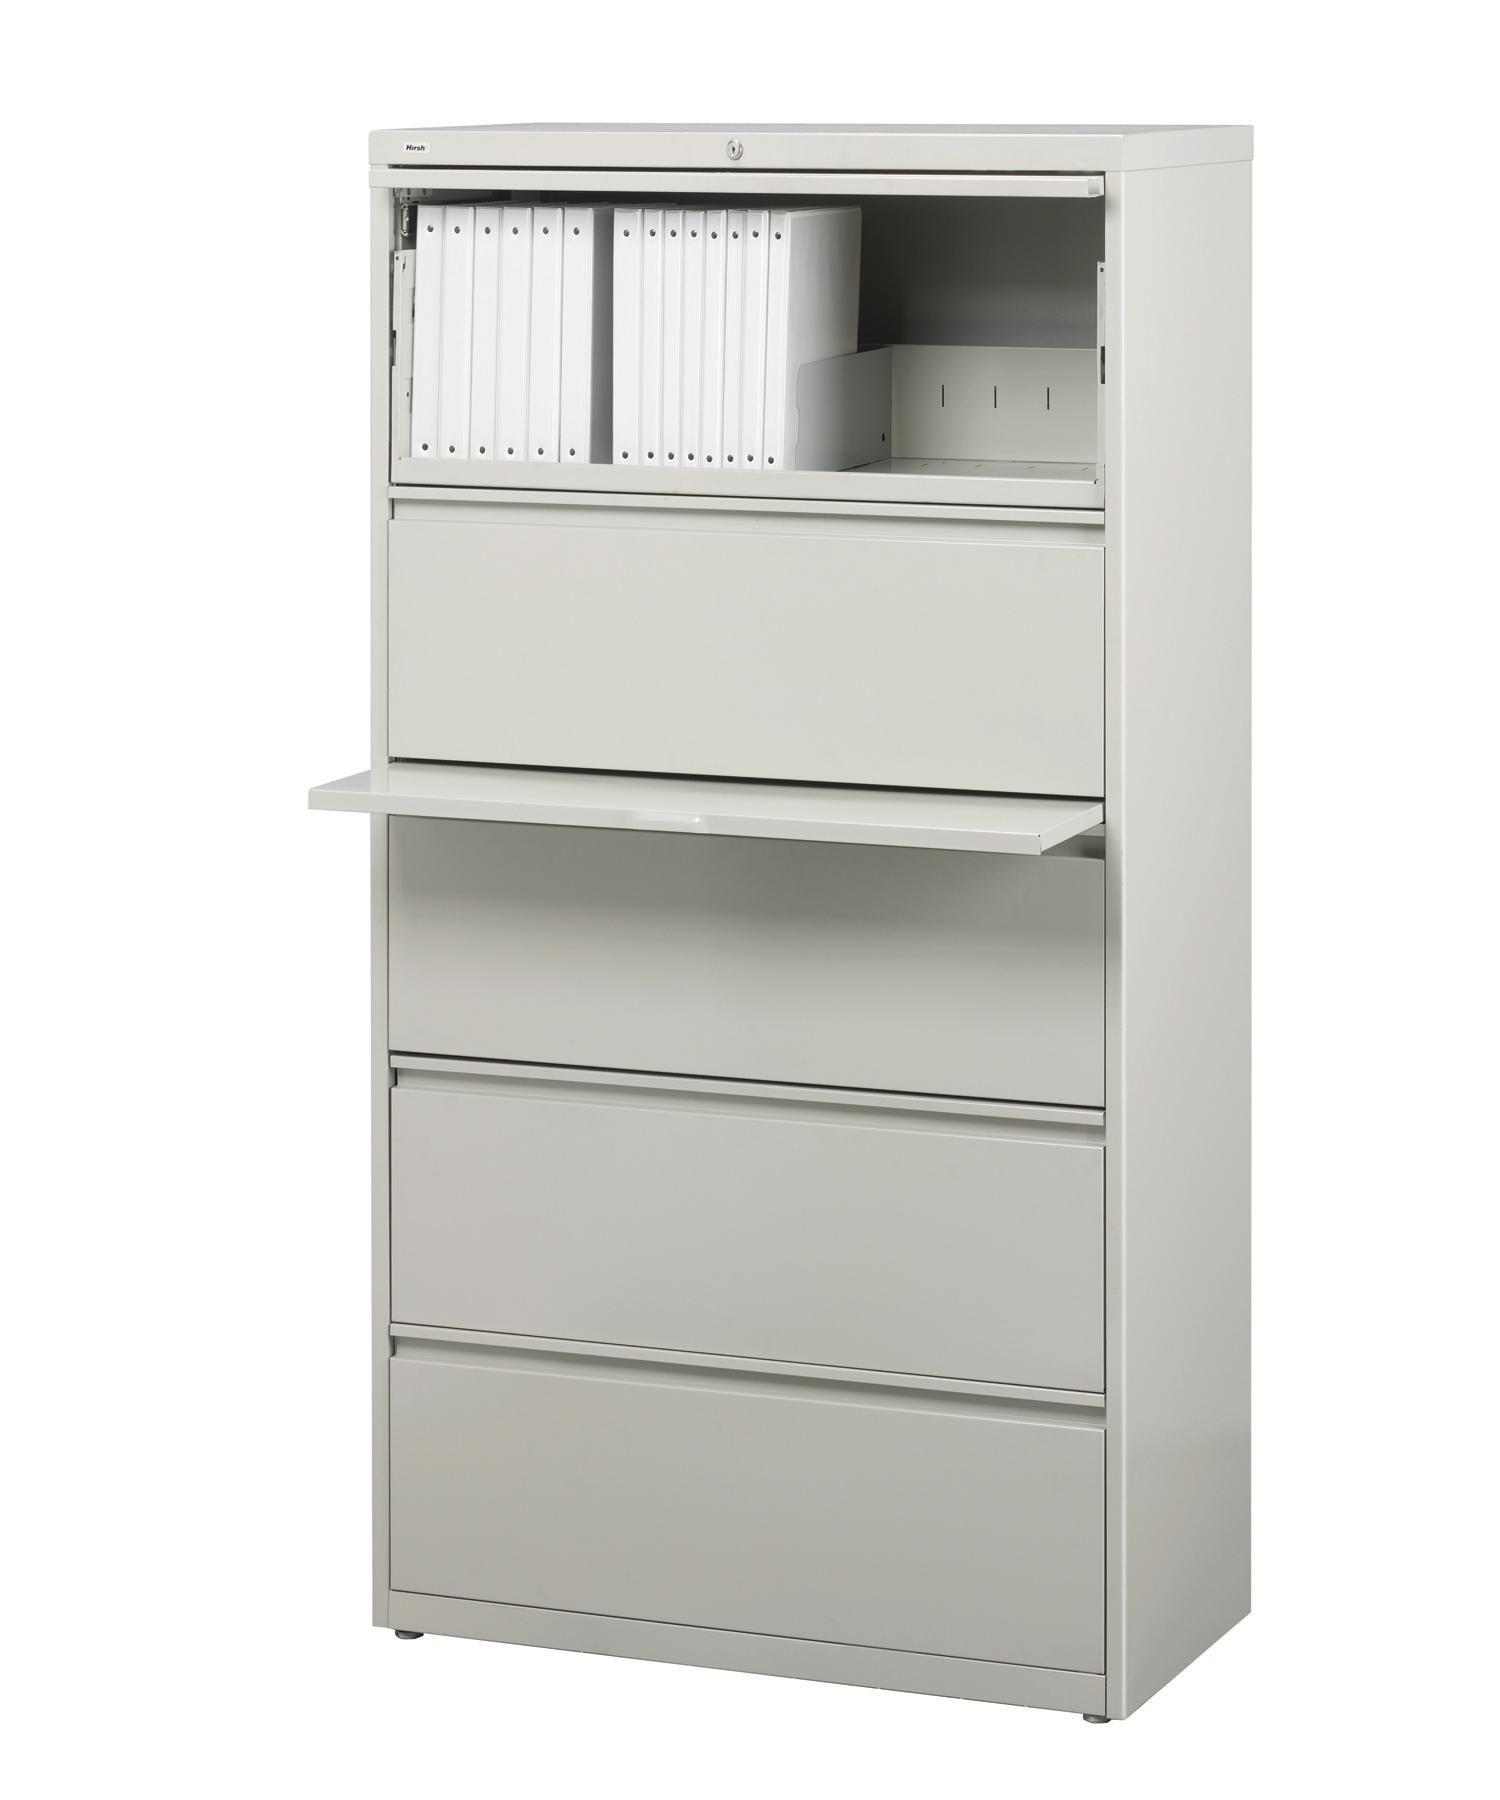 l storage files front charcoal s view cabinets hon furniture office side file brigade drawer cabinet lateral series